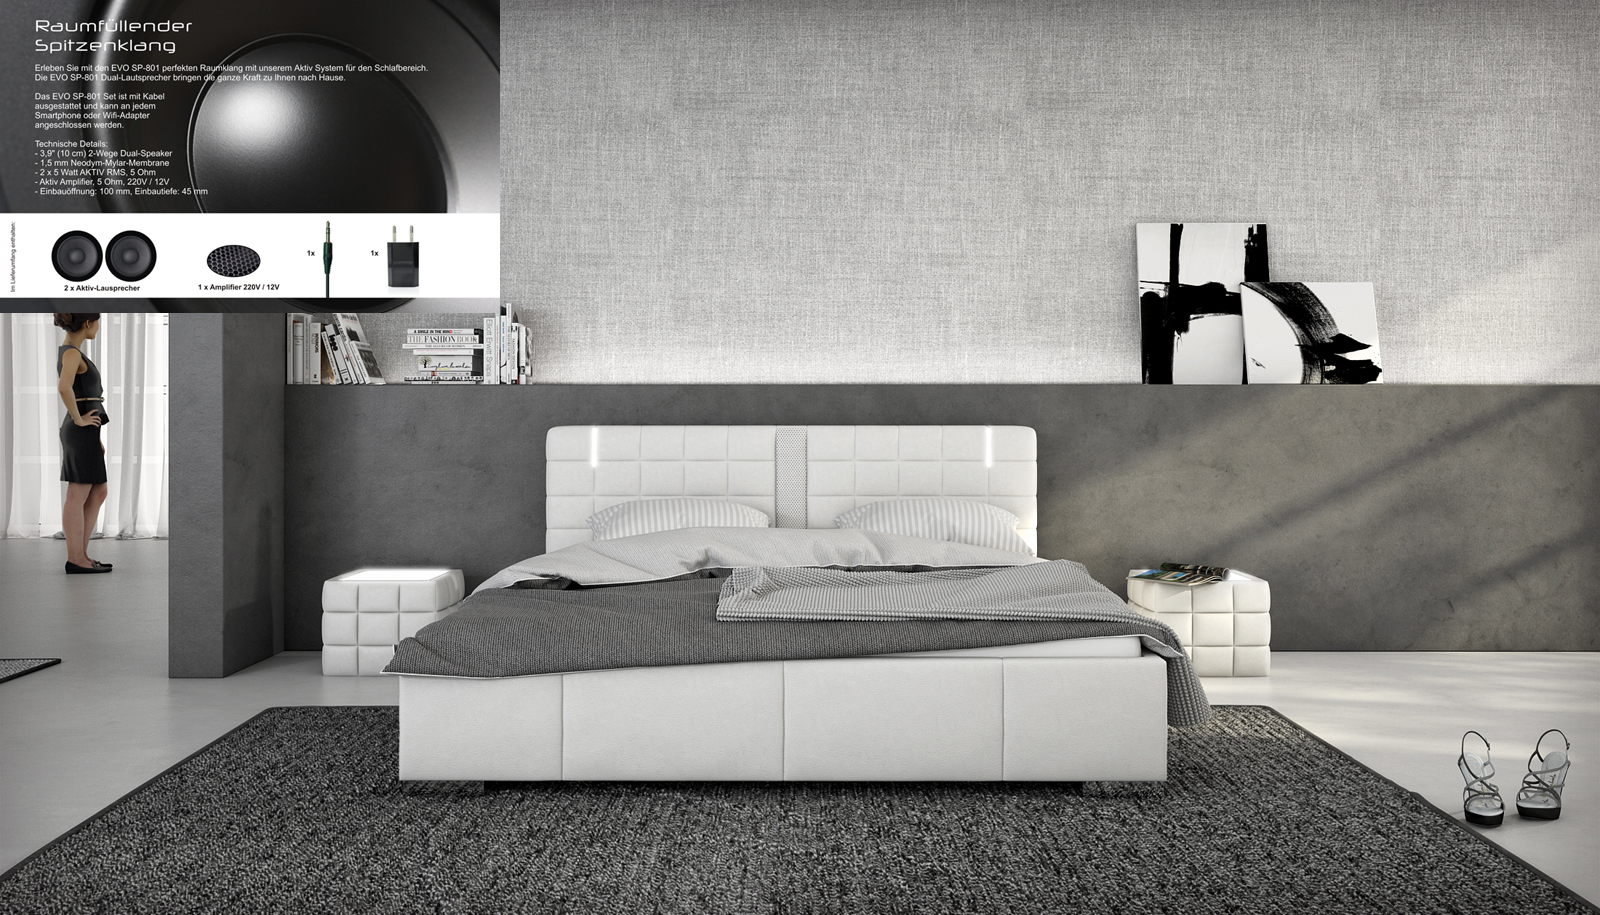 sam polsterbett 180 x 200 cm soundsystem farbauswahl cuenca bestellware. Black Bedroom Furniture Sets. Home Design Ideas